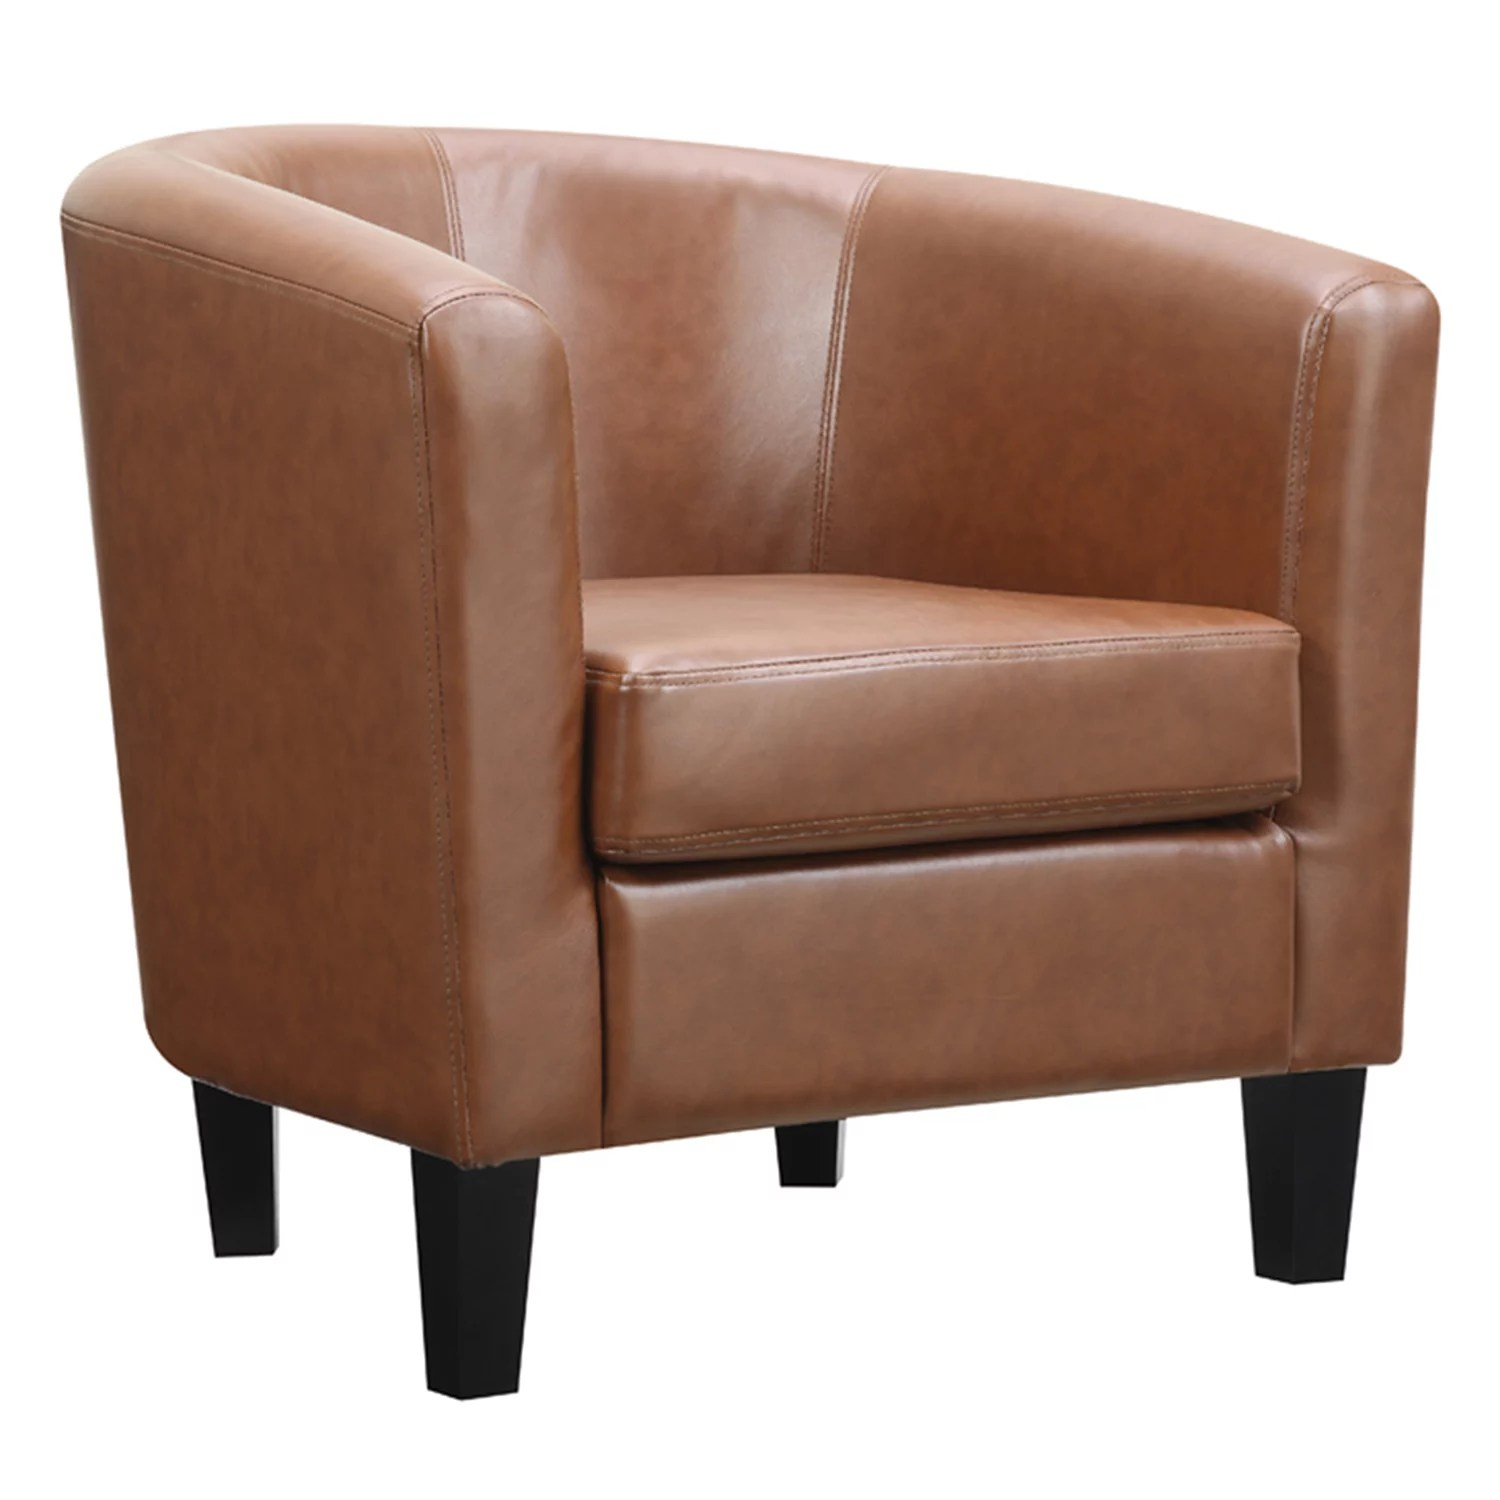 brown accent chairs chair upholstery fabric furniture kohl s riley barrel arm